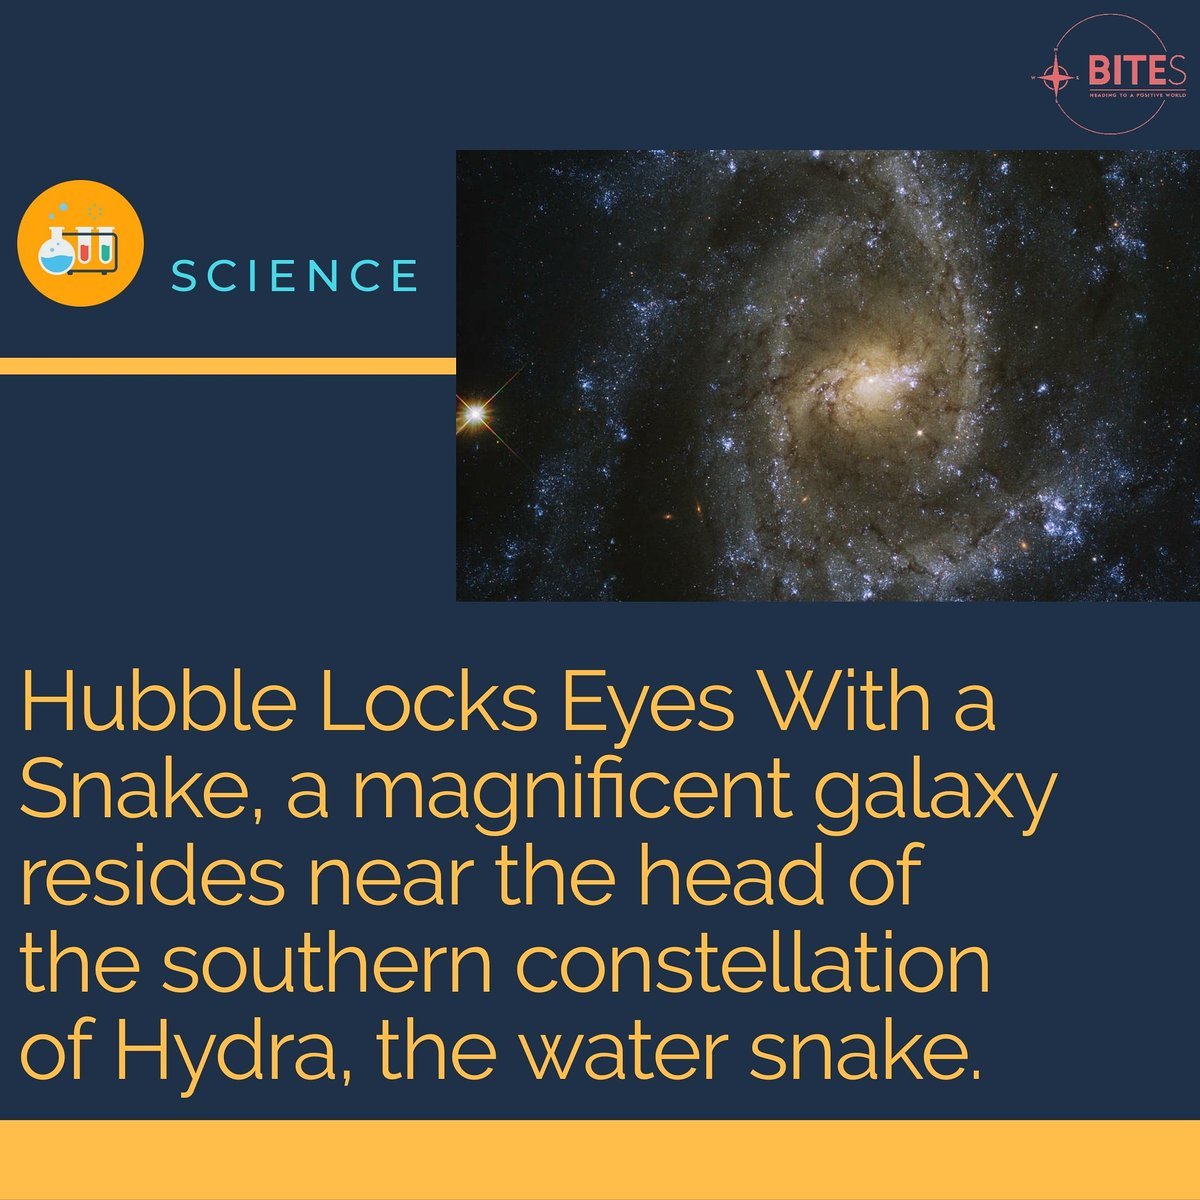 @spacepicsdaily1 This stunningbarred spiral galaxy, with a width of just over half that of the Milky Way, is brilliantly featured in this image taken by theNASA/ESA Hubble Space Telescope. #nasa #galaxy #discovery #hubble #watersnake  https://t.co/Sv1kkP8Aj9 https://t.co/CuMN4m9fWF